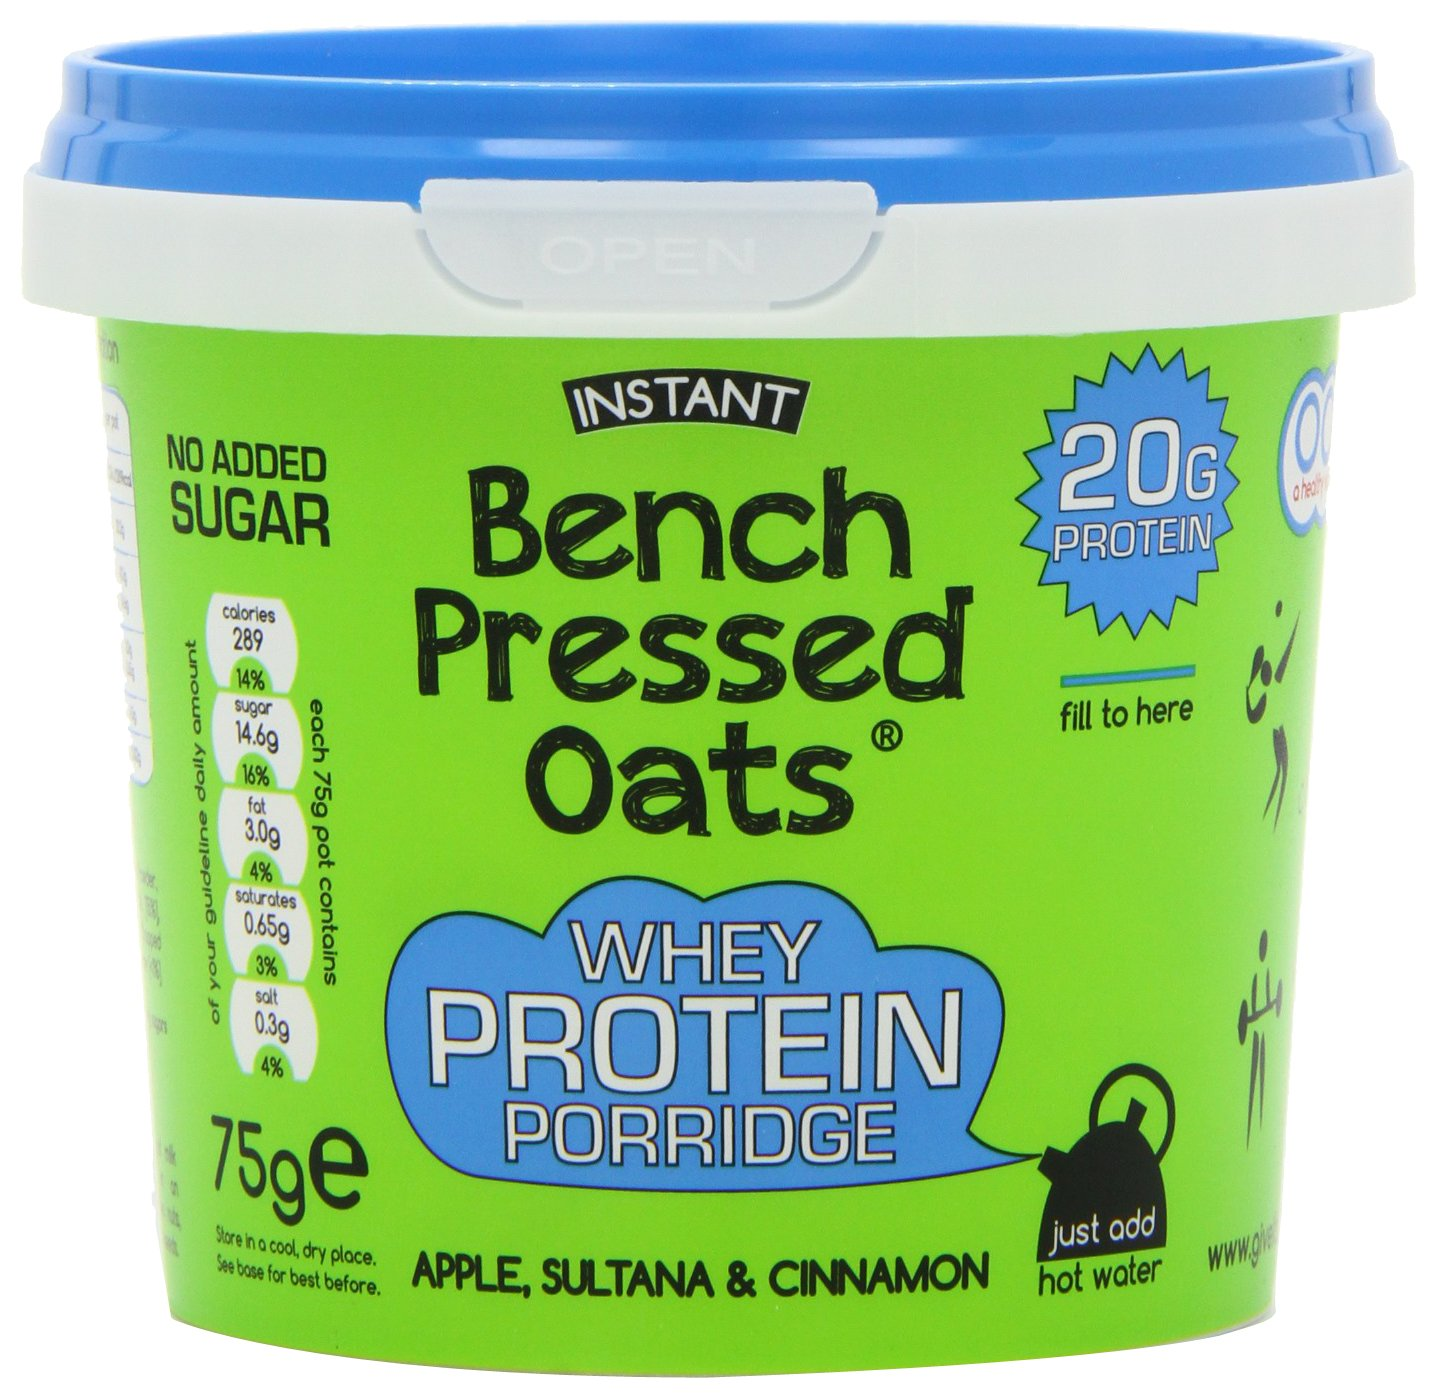 Bench Pressed Oats Apple, Sultana and Cinnamon Instant Whey Protein Porridge (Pack of 8) GroceryCentre